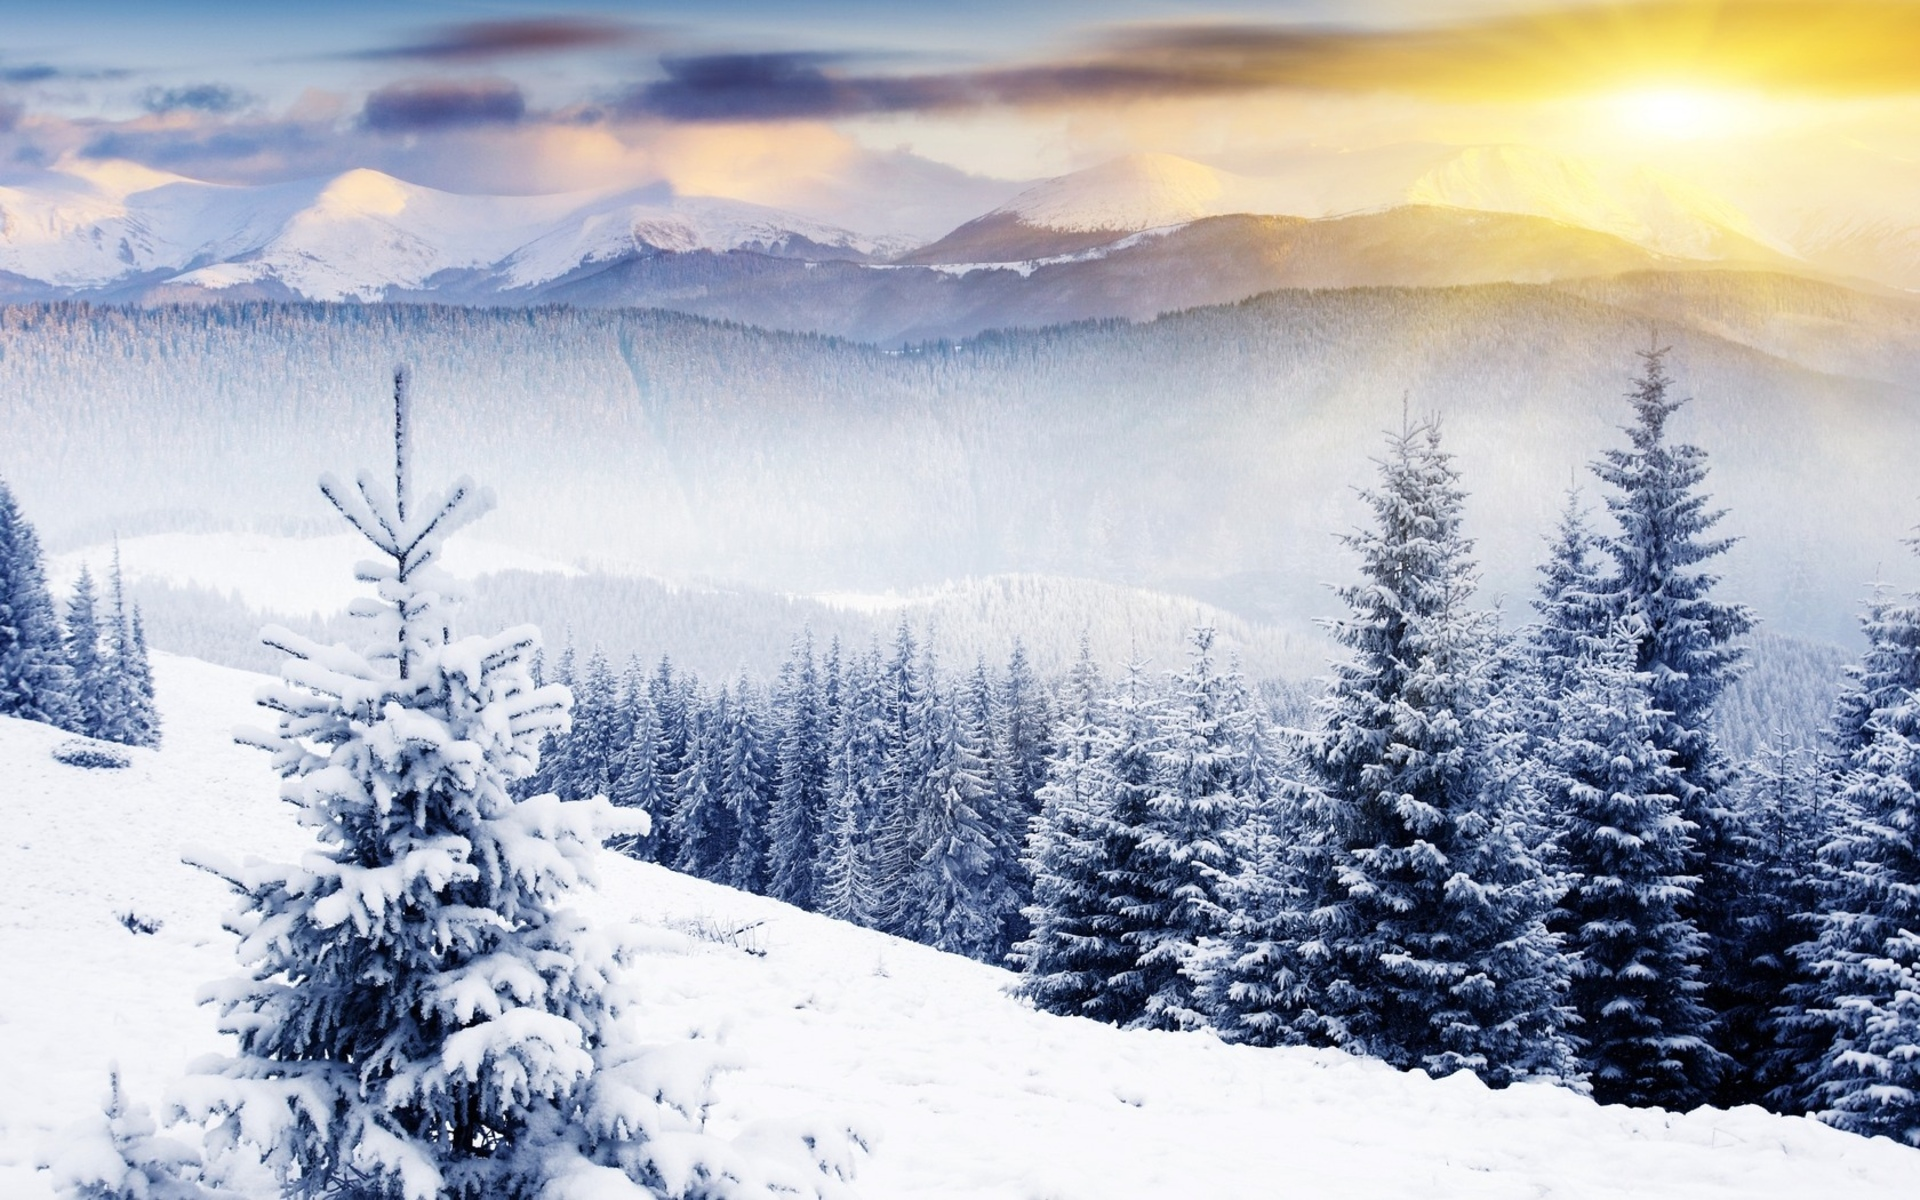 Winter Mountain Scenes Wallpaper   Viewing Gallery 1920x1200